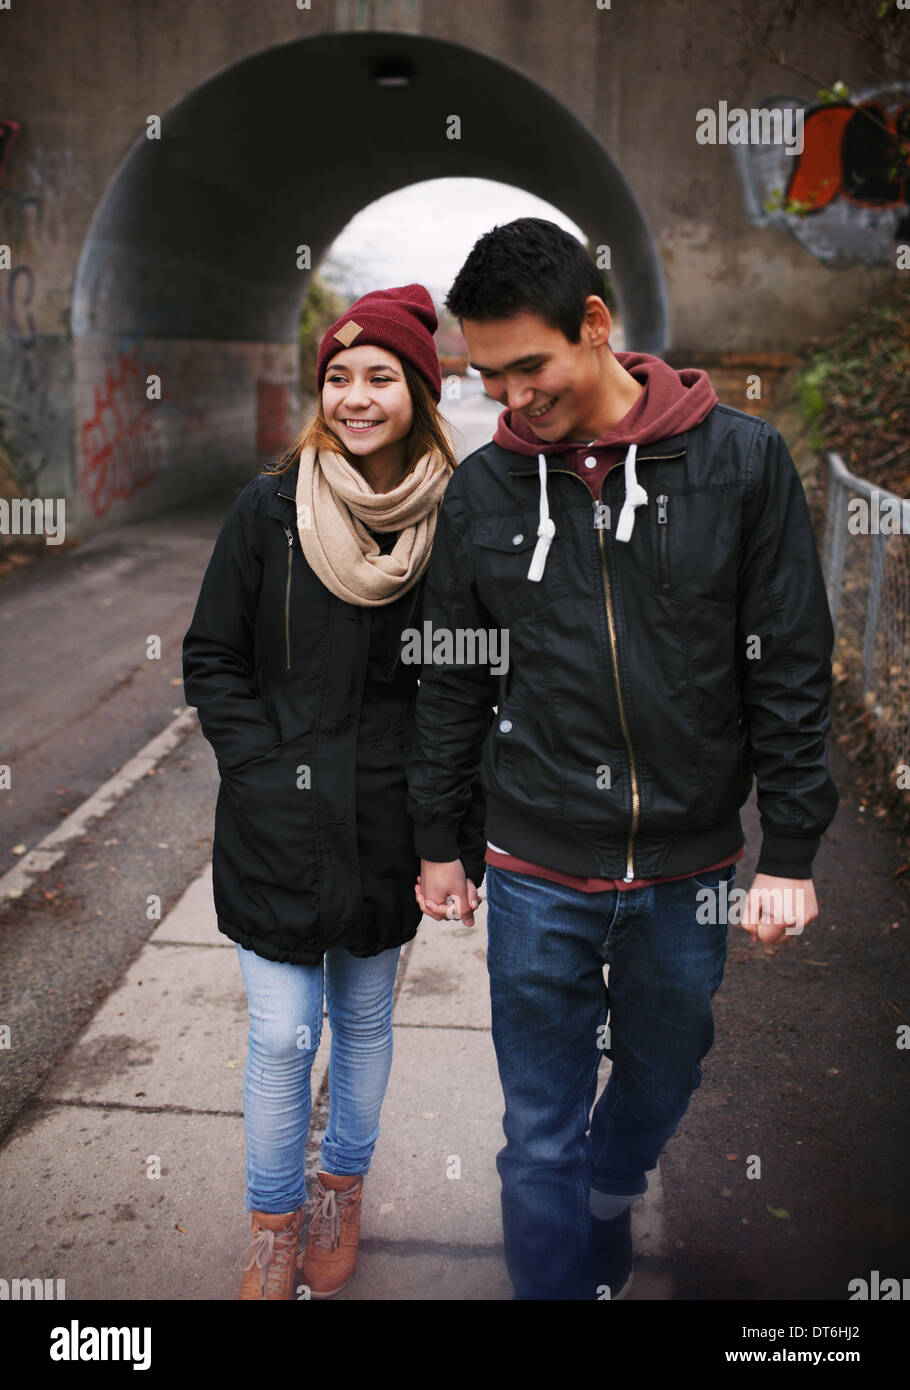 Loving young couple walking on a street smiling. Mixed race couple walking on sidewalk. - Stock Image